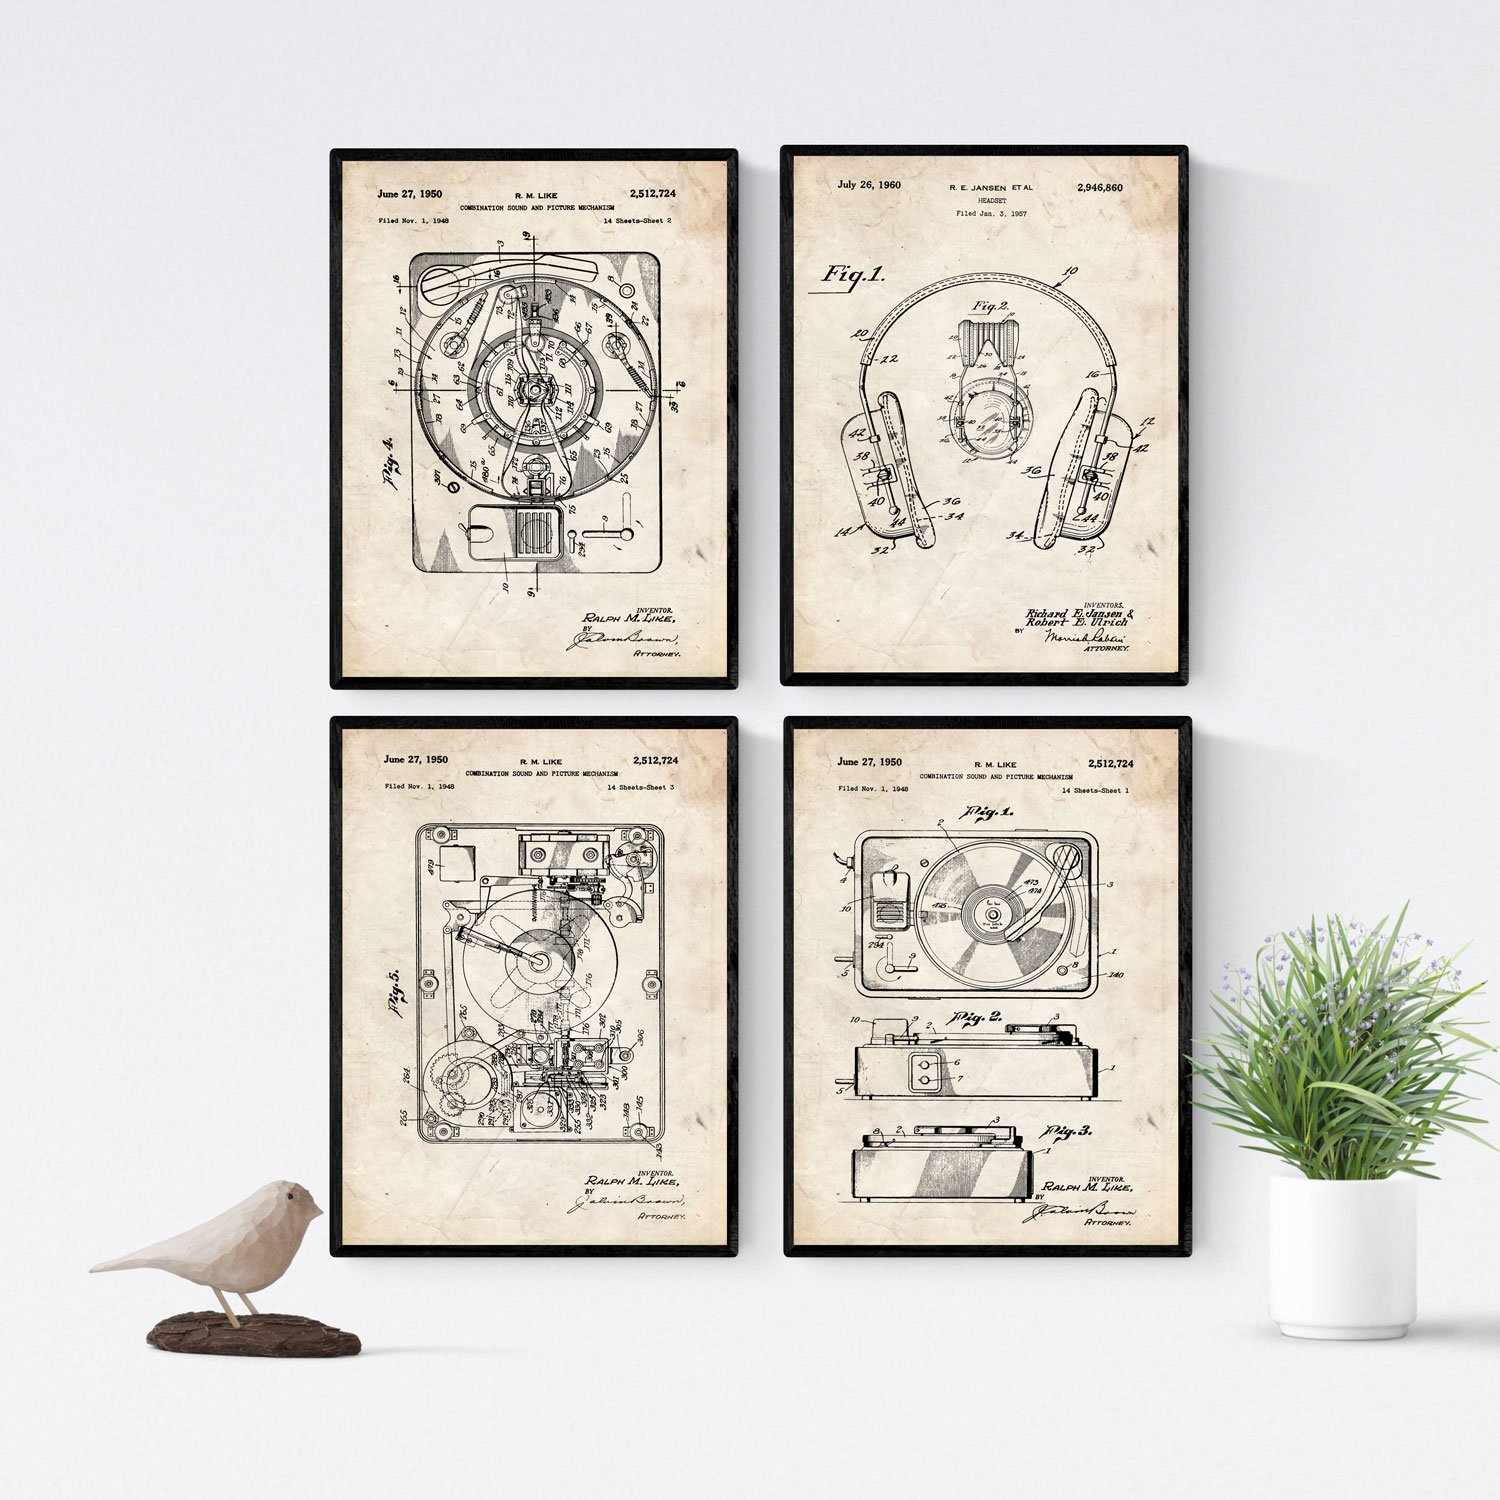 Amazon.com: Nacnic Vintage - Pack of 4 Sheets with ...